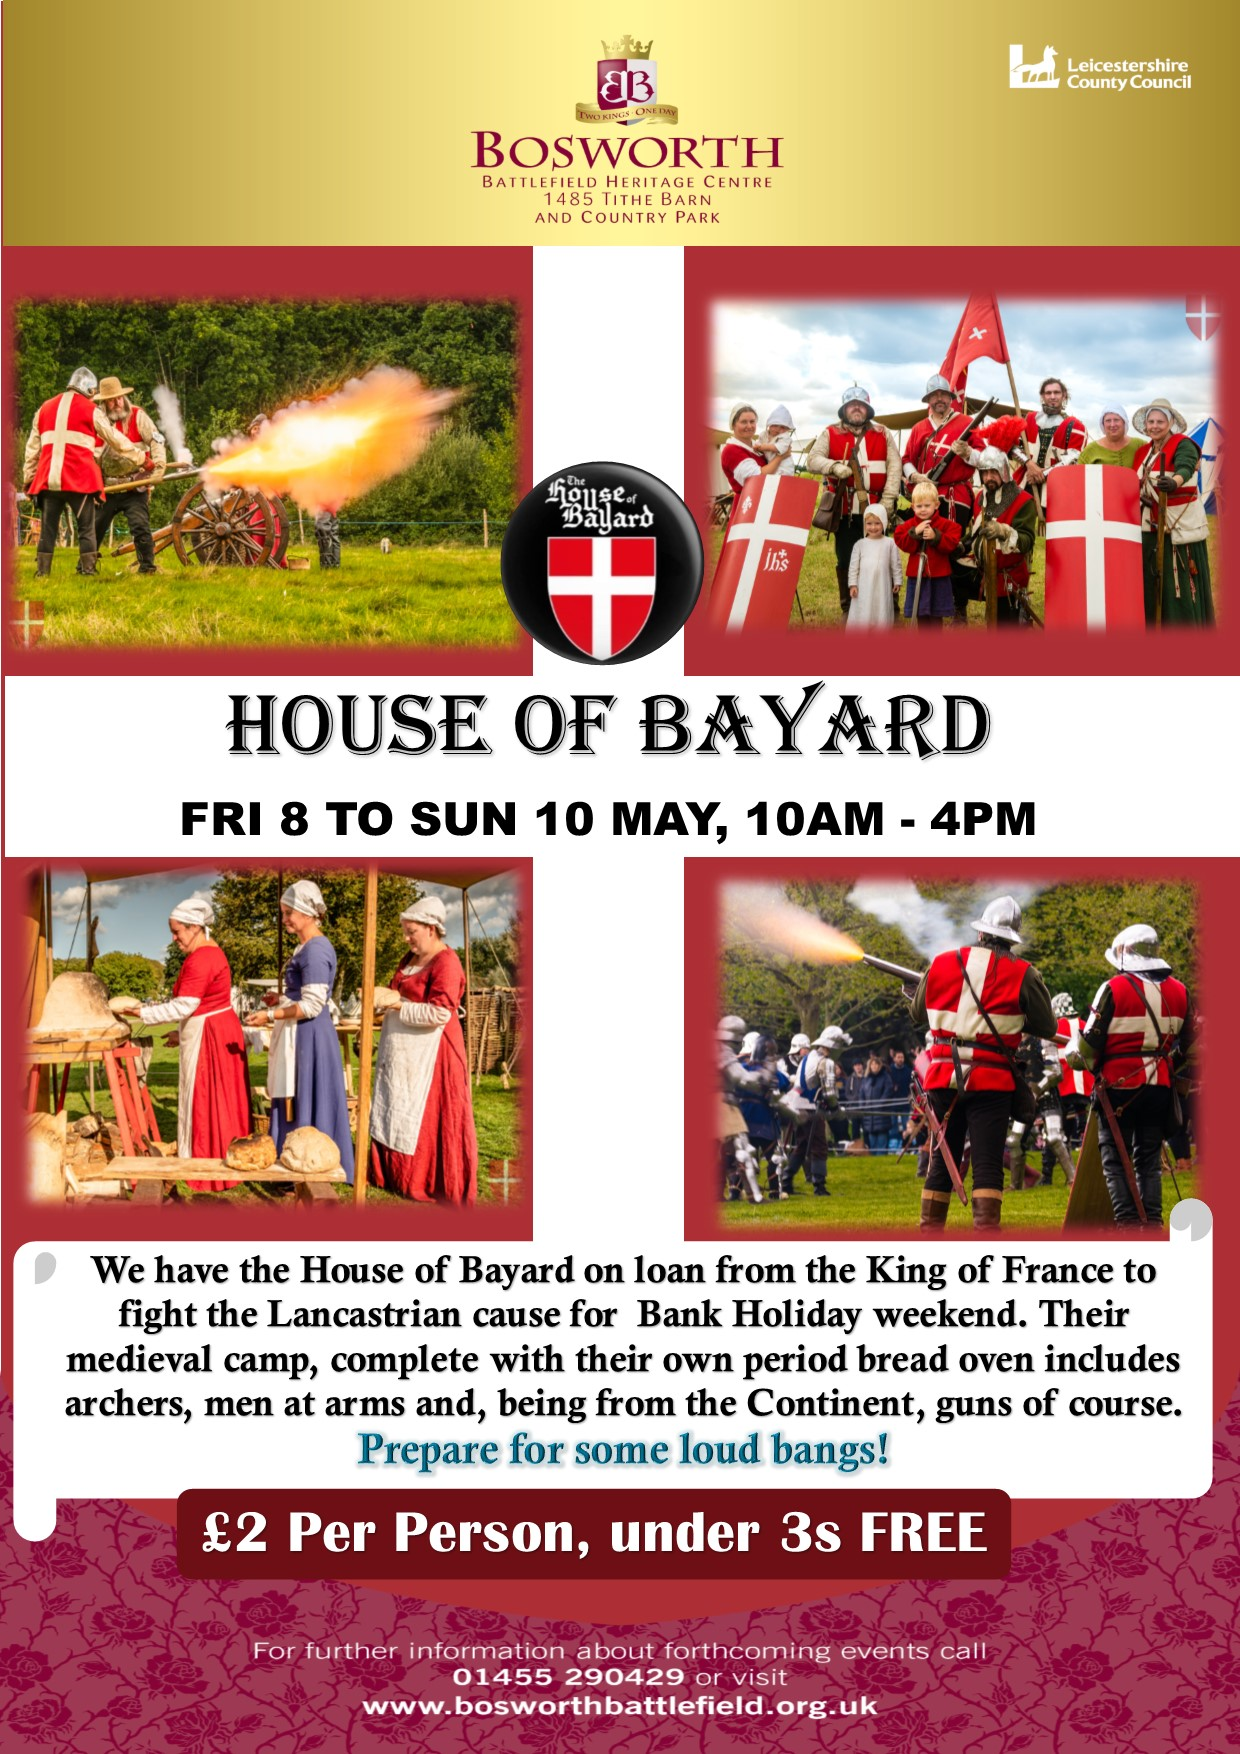 House of Bayard Living History Camp - POSTPONED